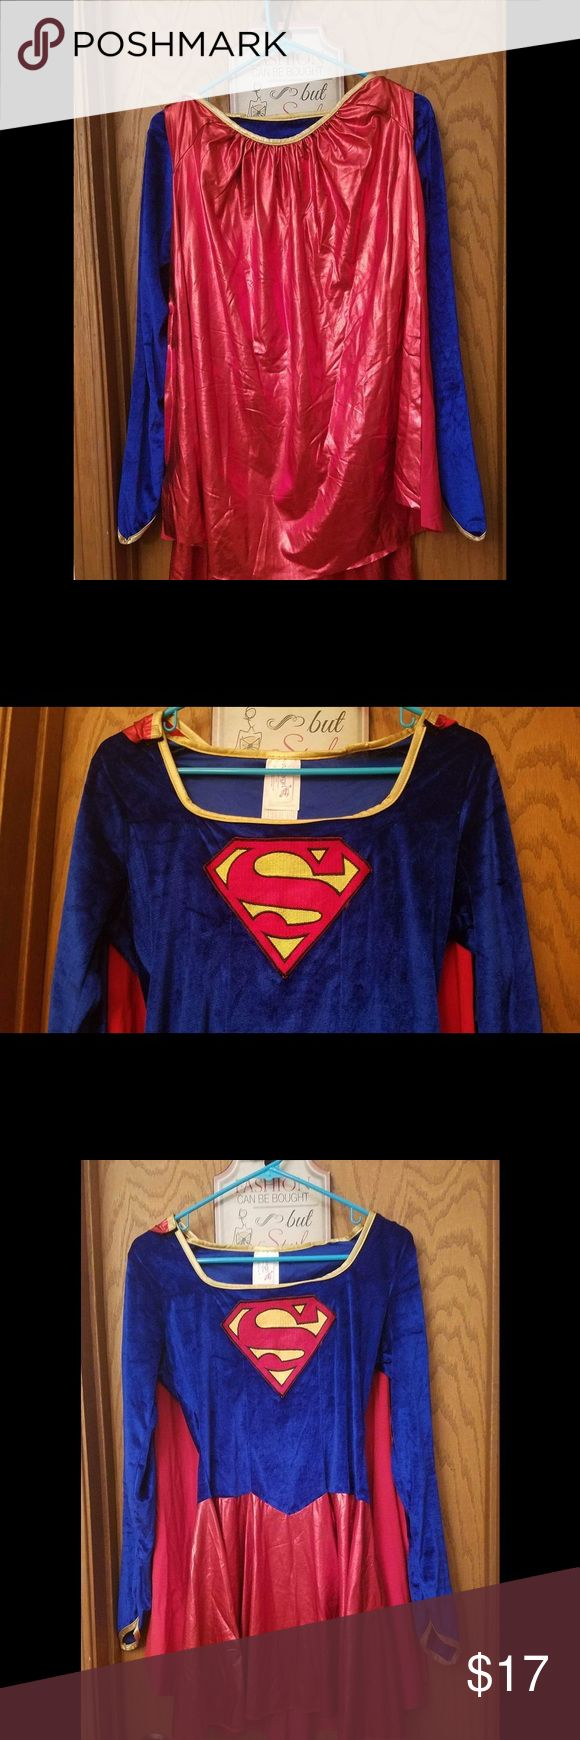 Super Women costume size medium red cape Super woman costume with cape, size medium, great condition, the blue part is velvet, the red one is shiny, great stitching in S symbol. Other